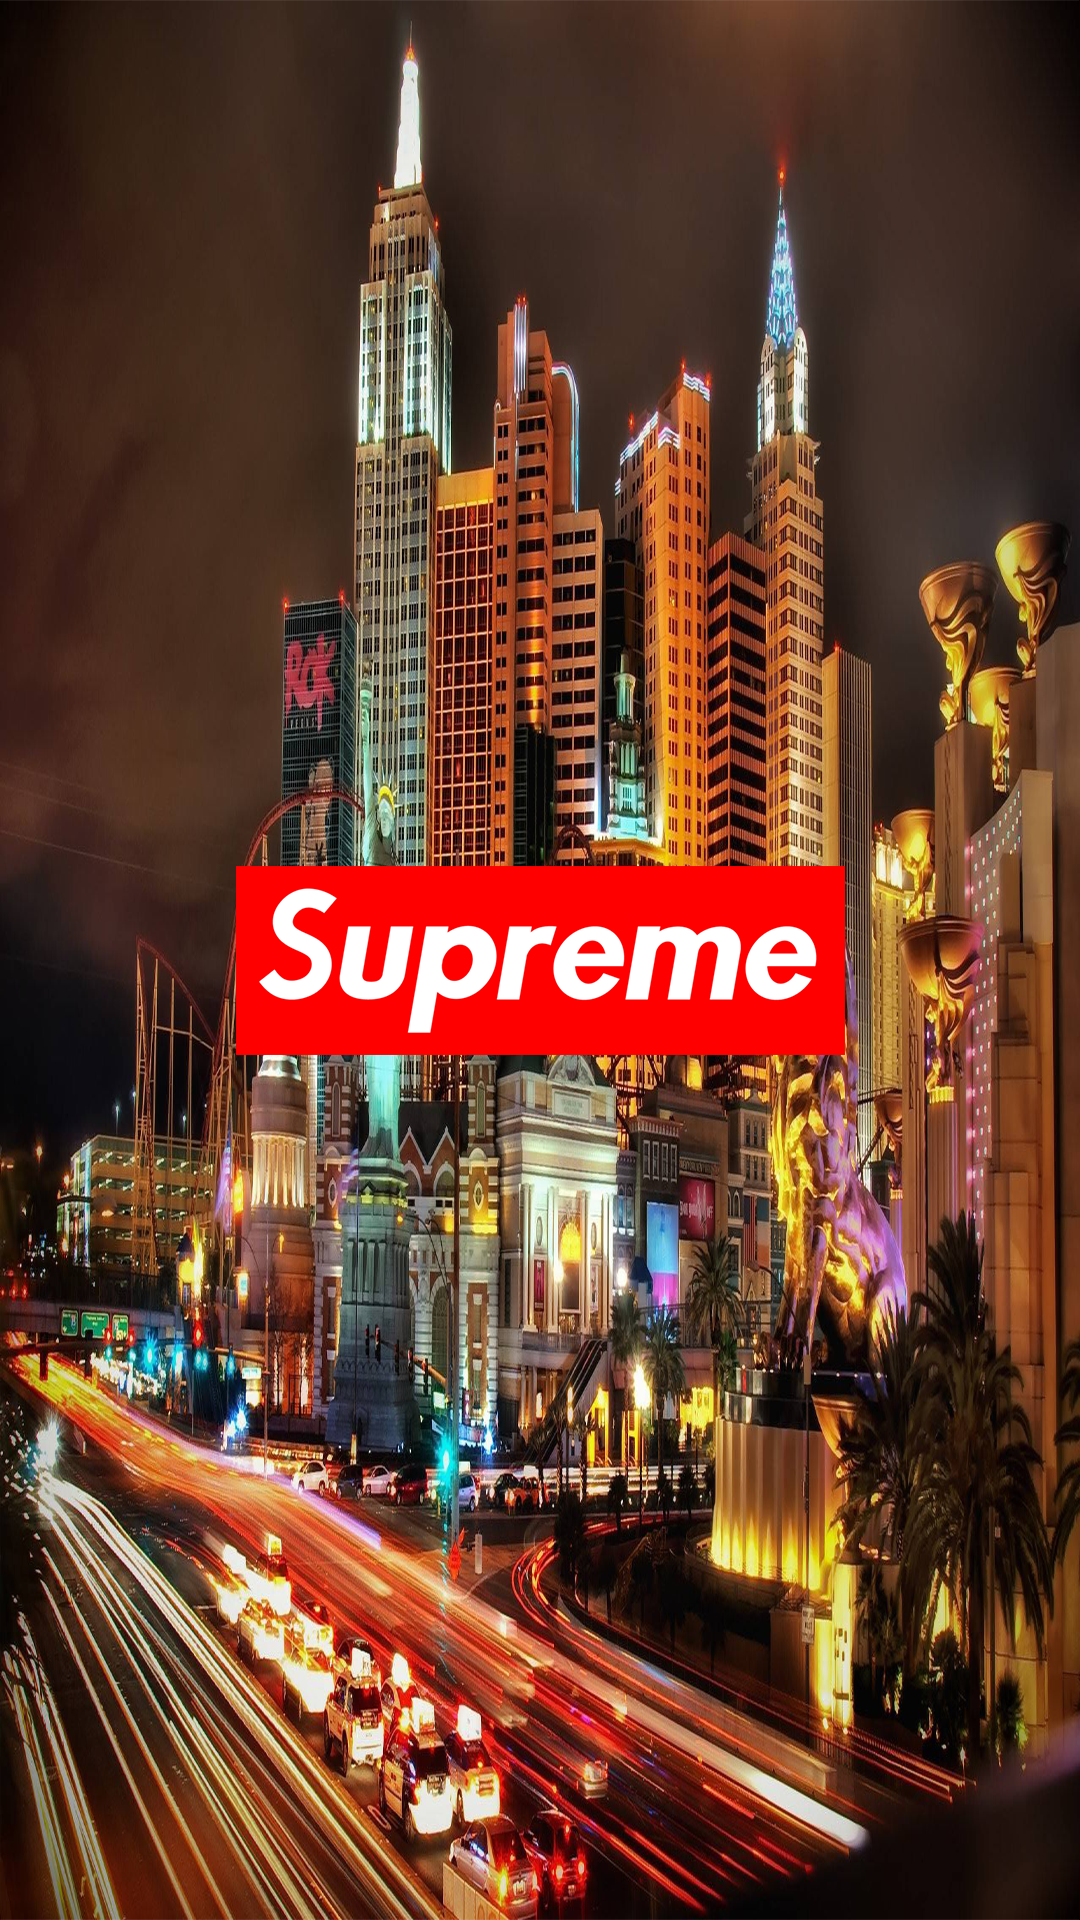 SUPREME Tap to see more of the Supreme wallpapers